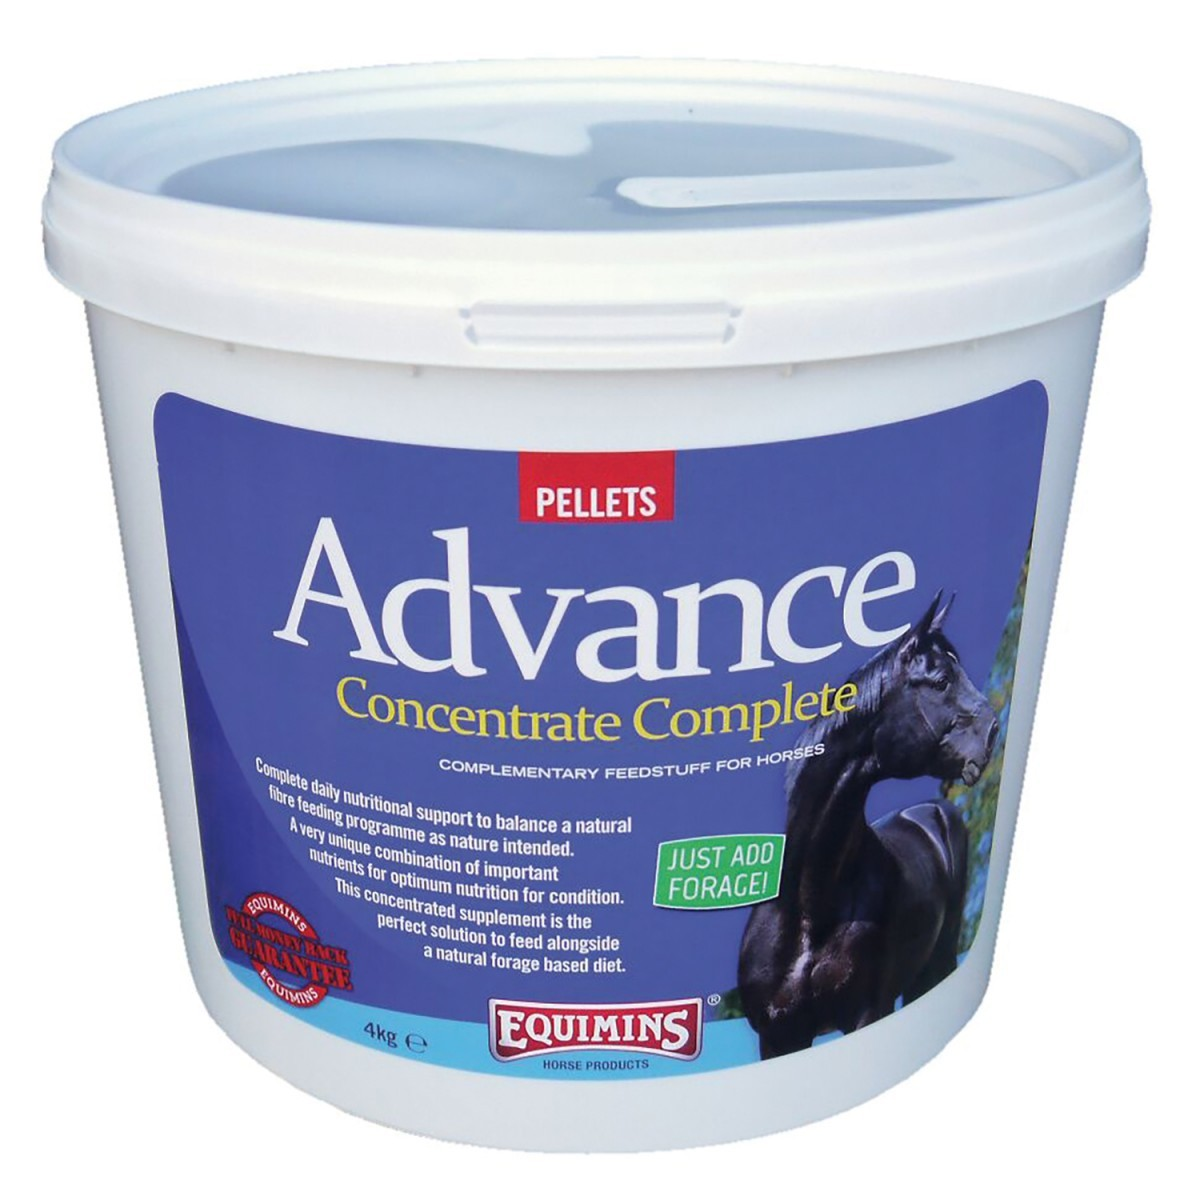 Equimins Advance Concentrate Complete Pellets Vitamin & Mineral Supplement